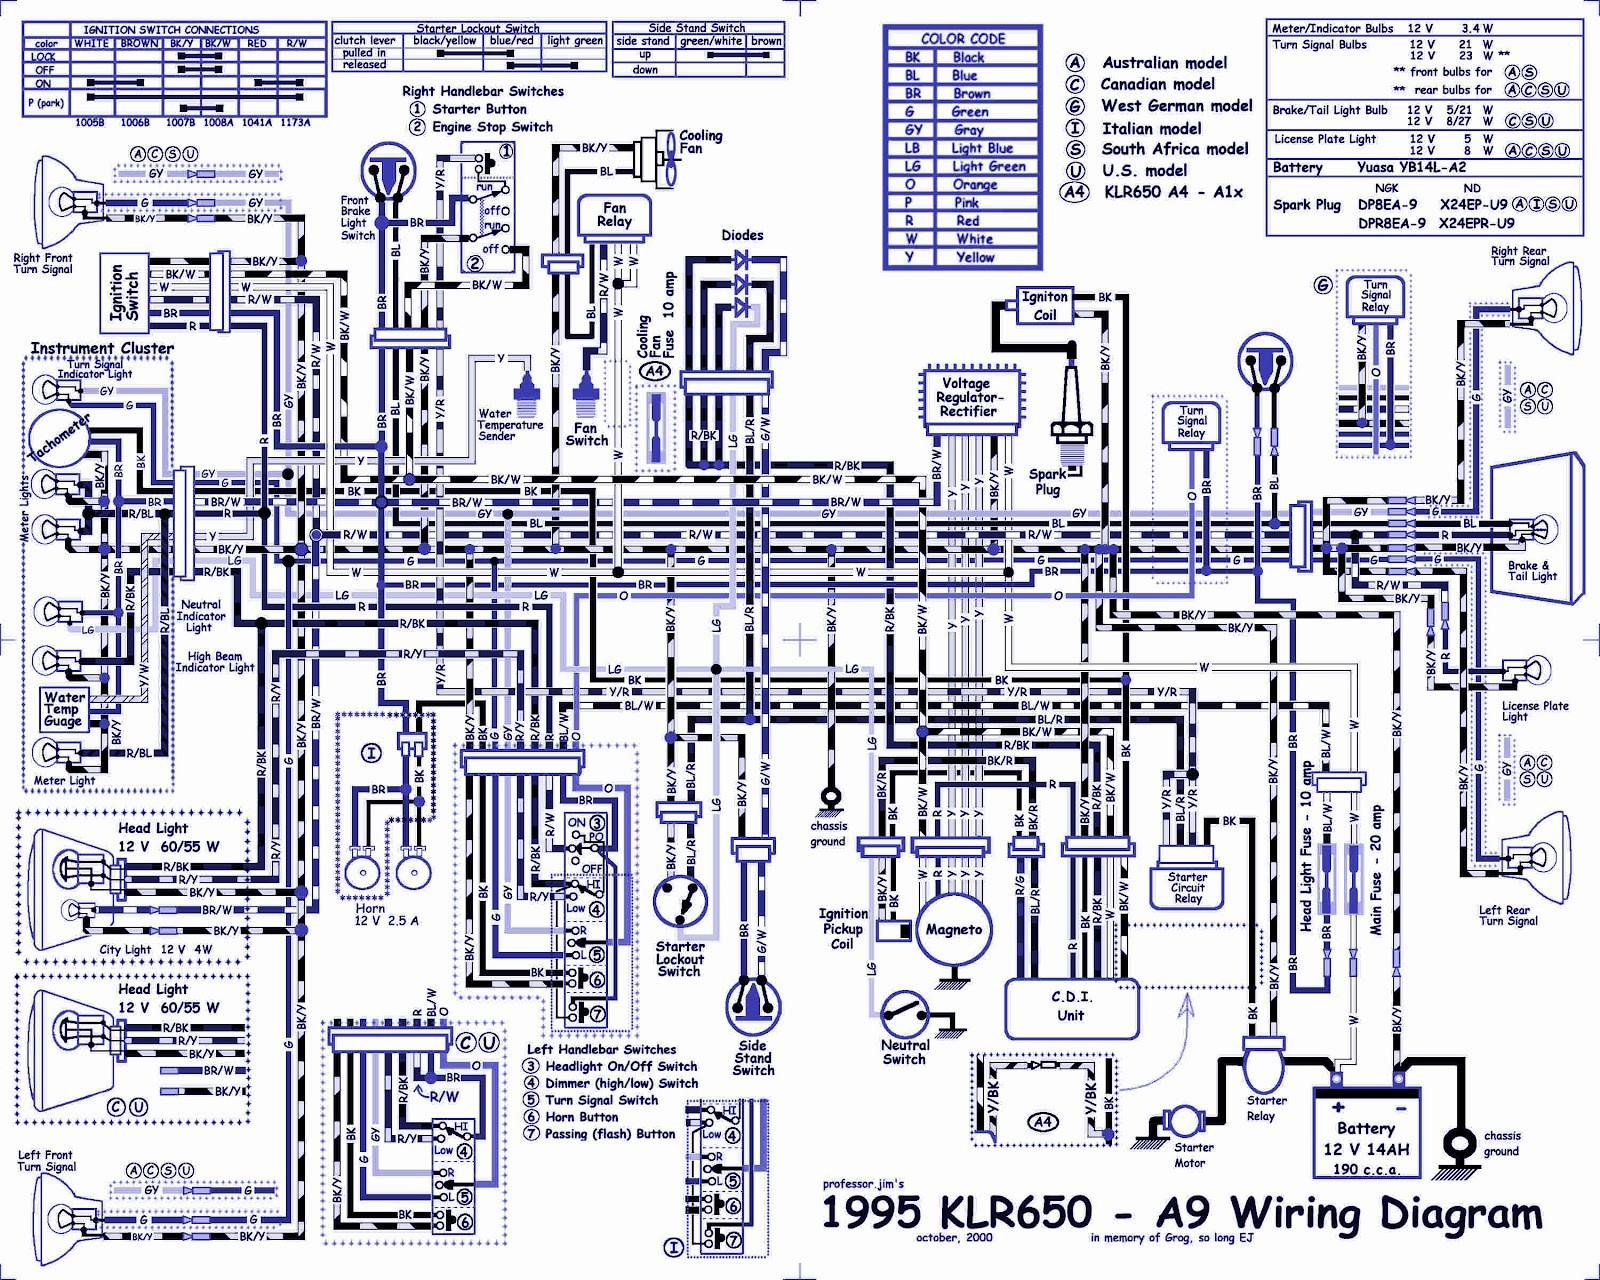 Wheel Diagram Car Unique Steering Wheel Radio Controls Wiring Diagram Diagram Of Wheel Diagram Car